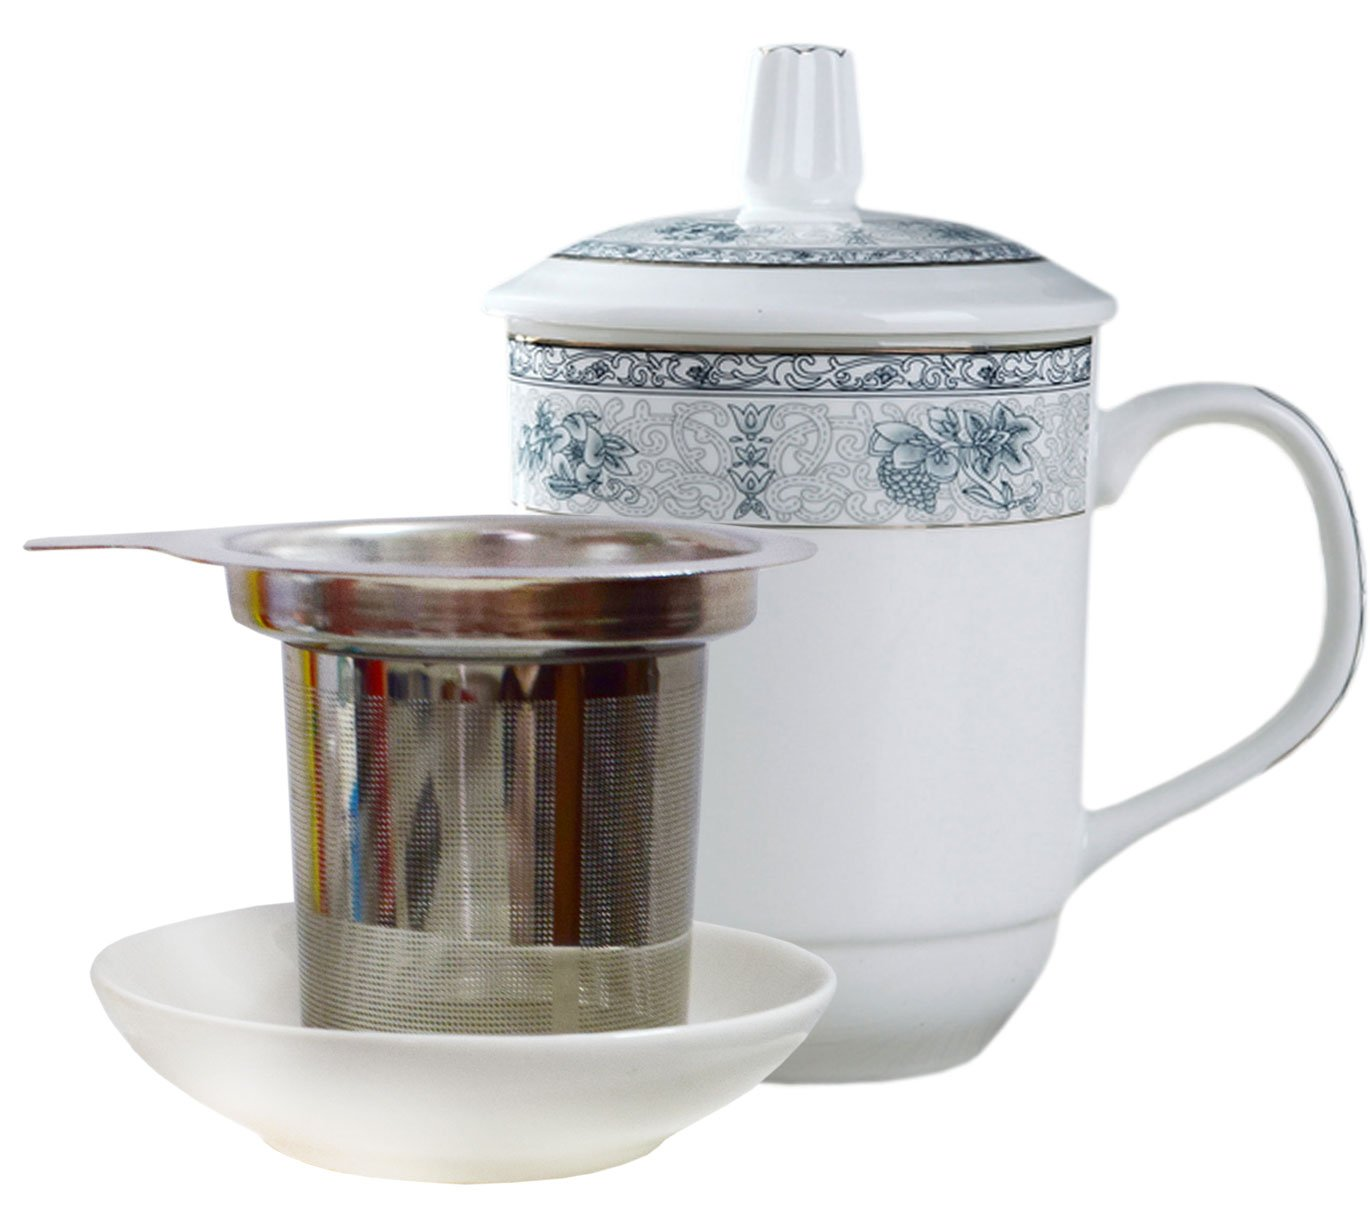 BandTie Convenient Travel Office Loose Leaf Tea Brewing System-Chinese Gongfu Tea Maker Ceramics Tea Cup Stainless Steel Infuser 4-Piece Set with Tea Cup Lid and Saucer,Flowers Pattern